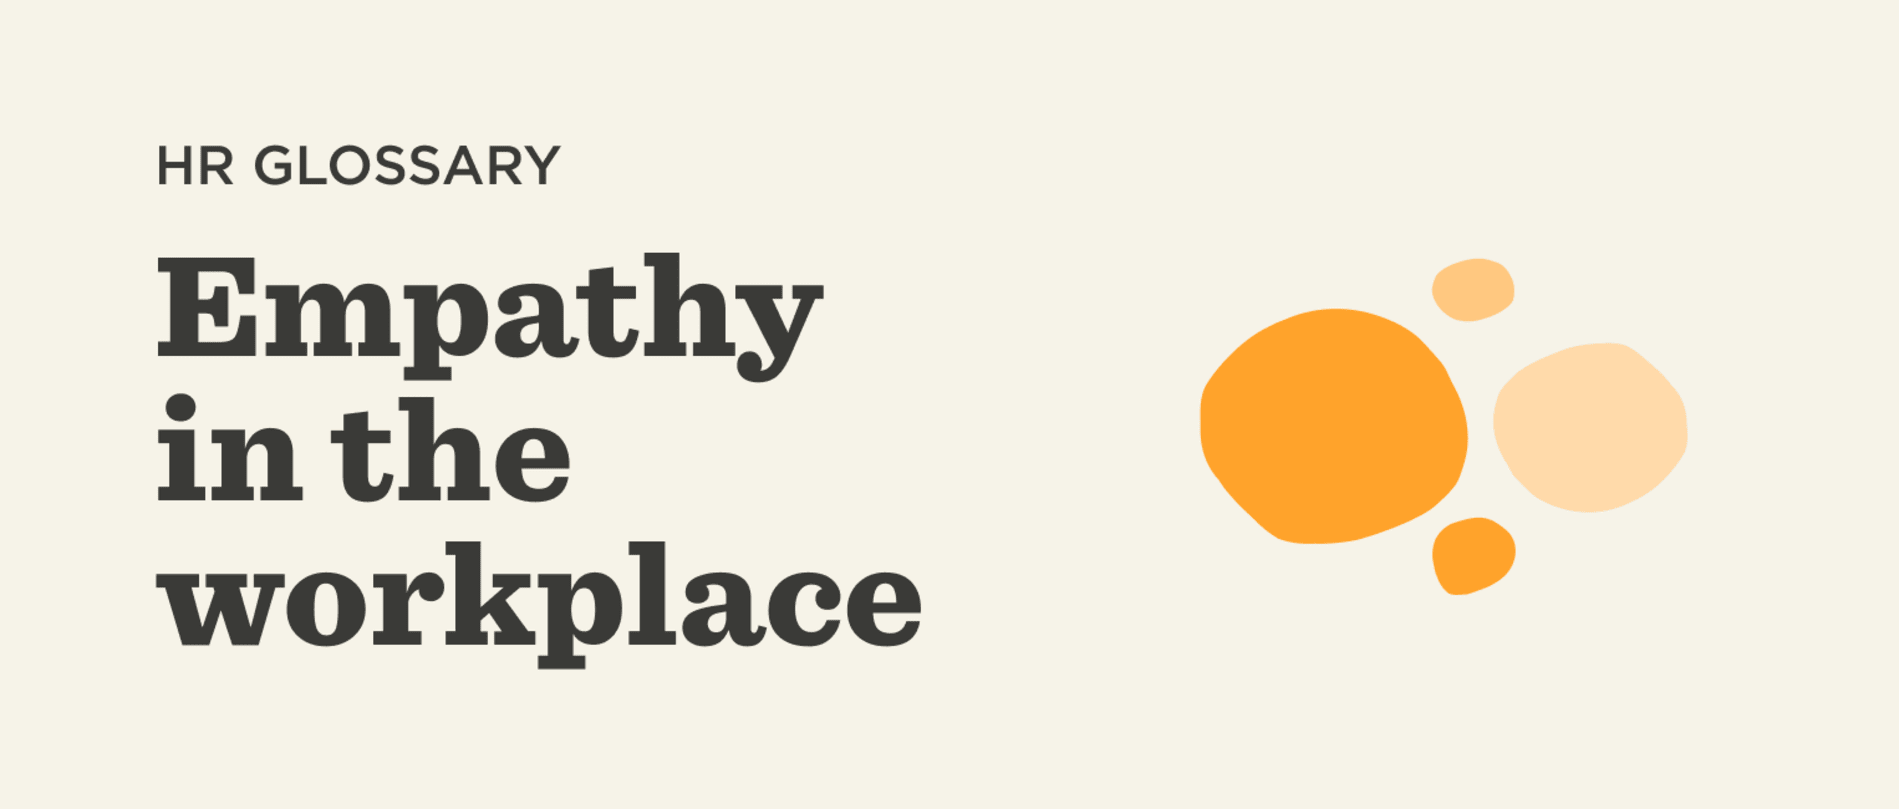 What is empathy in the workplace? - Empathy-in-the-workplace-Glossary-banner-3.png